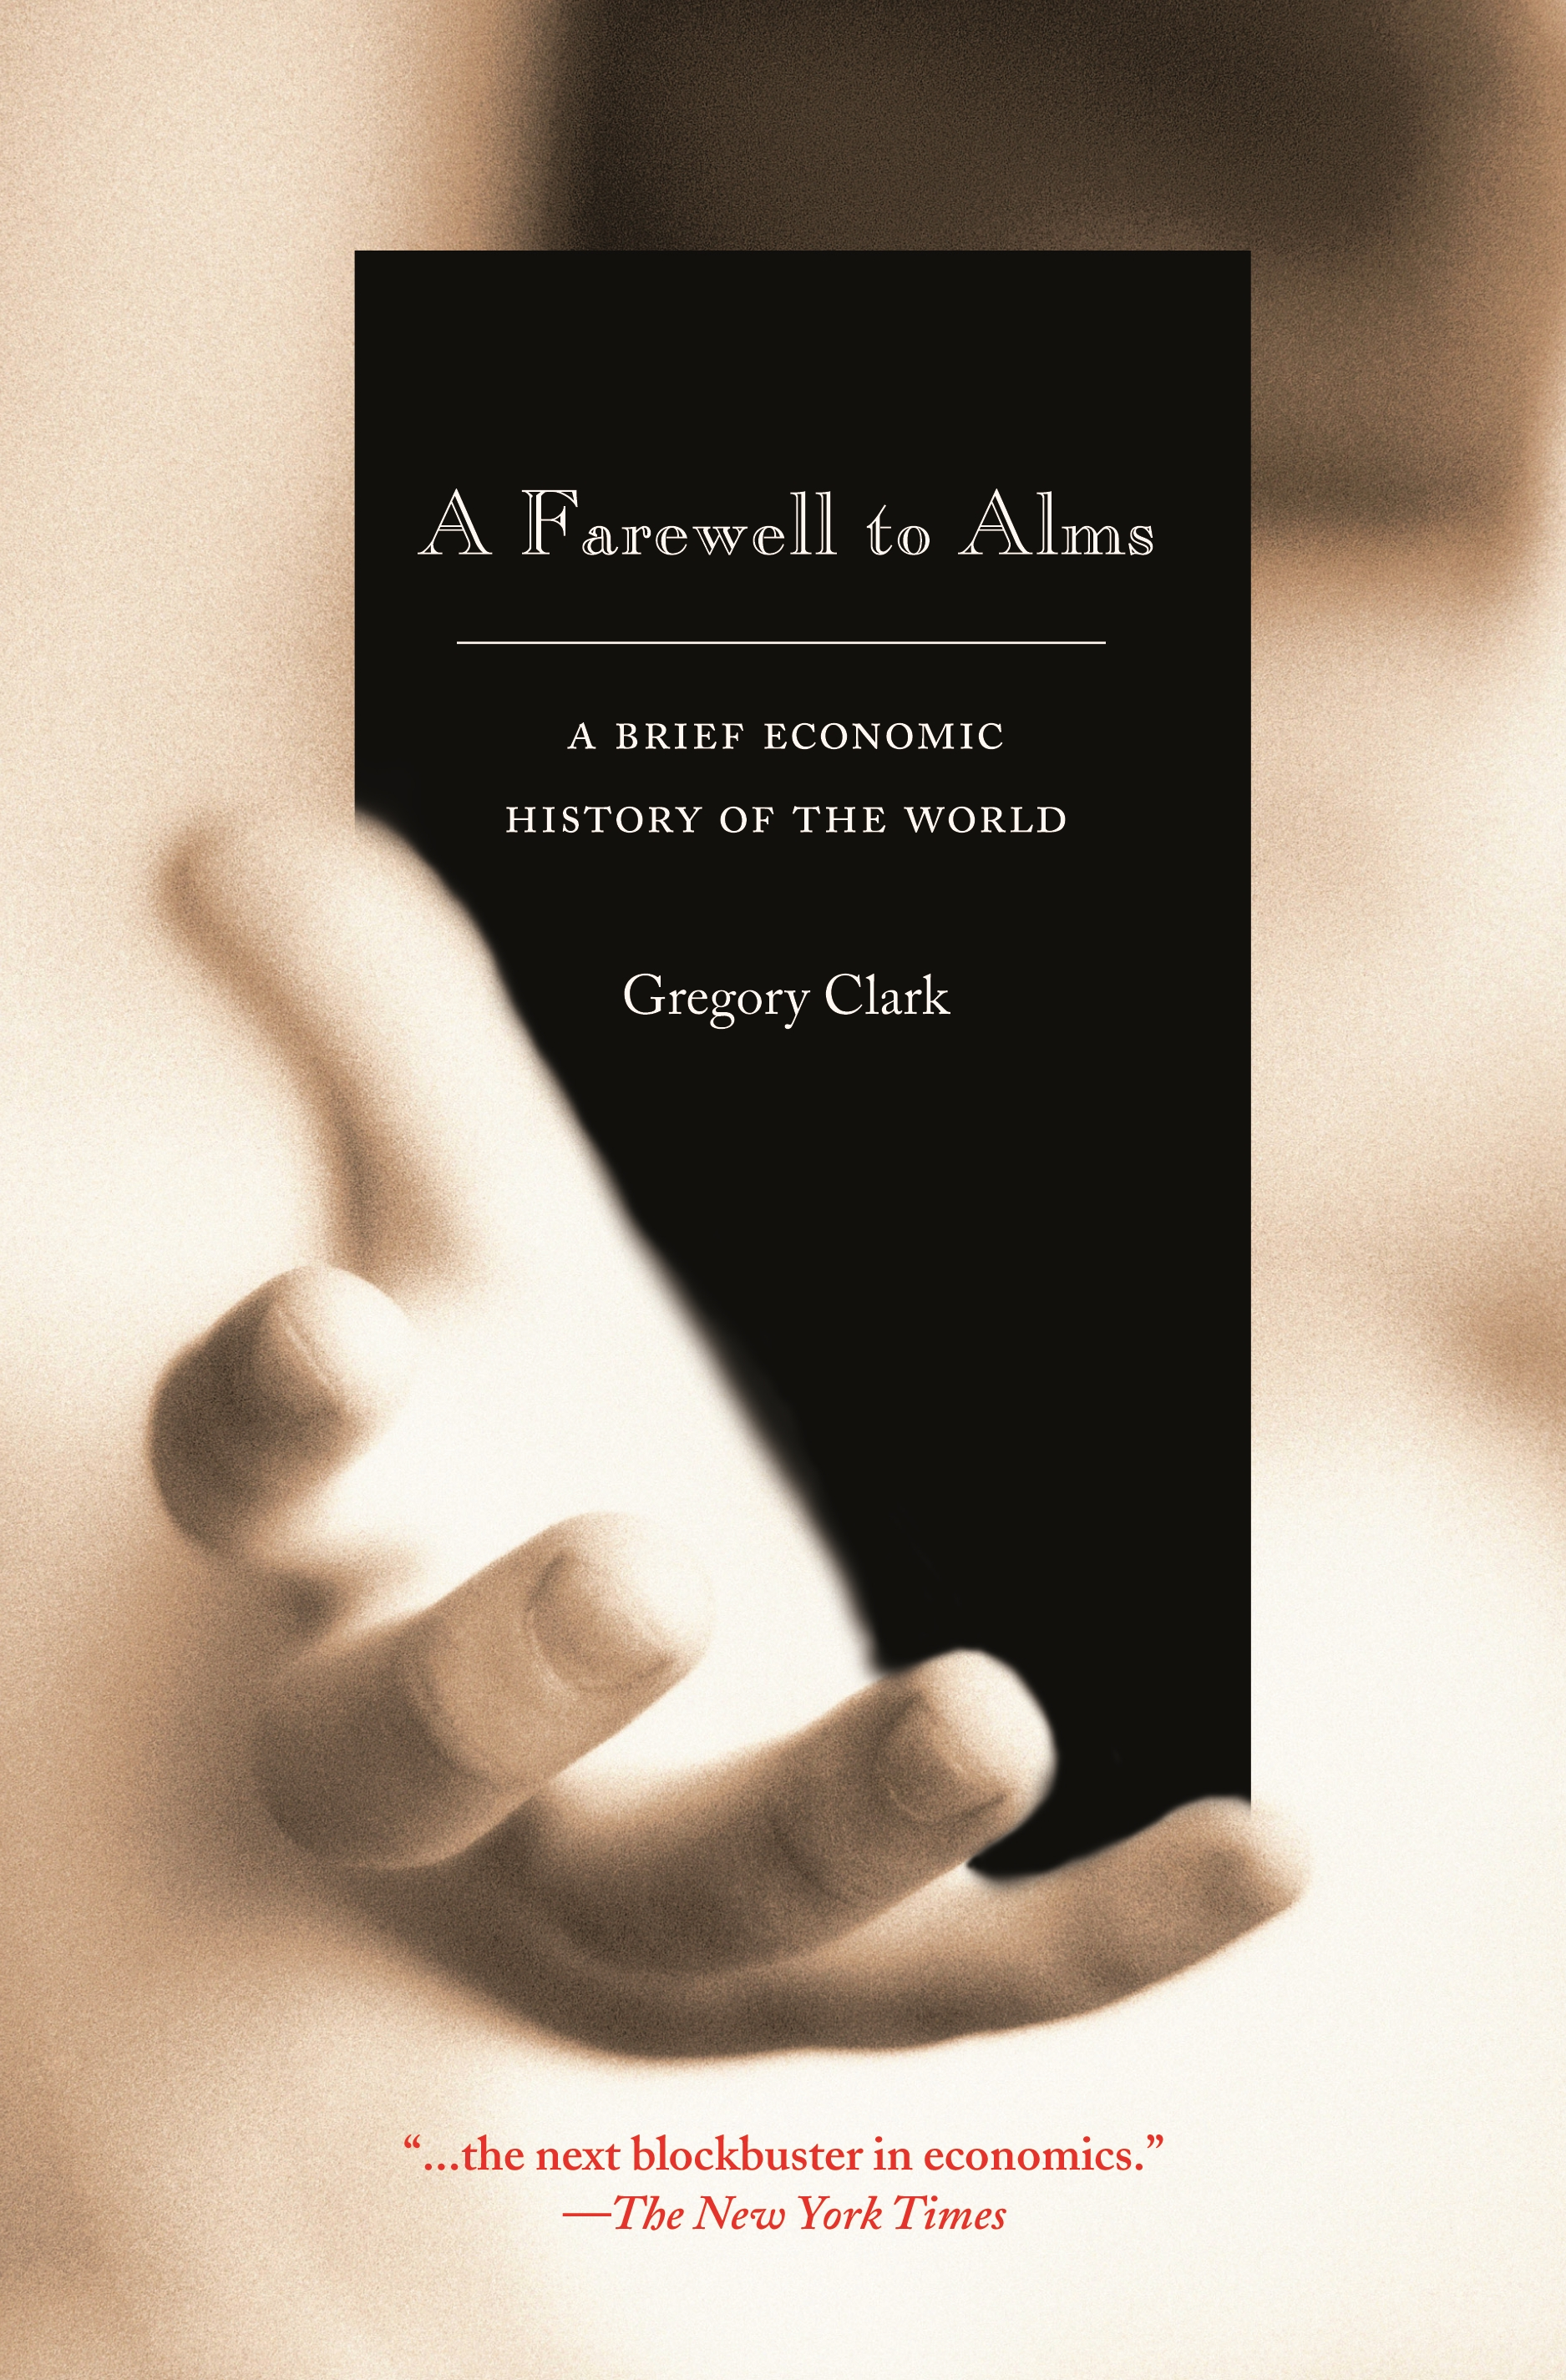 Download Ebook A Farewell to Alms by Gregory Clark Pdf